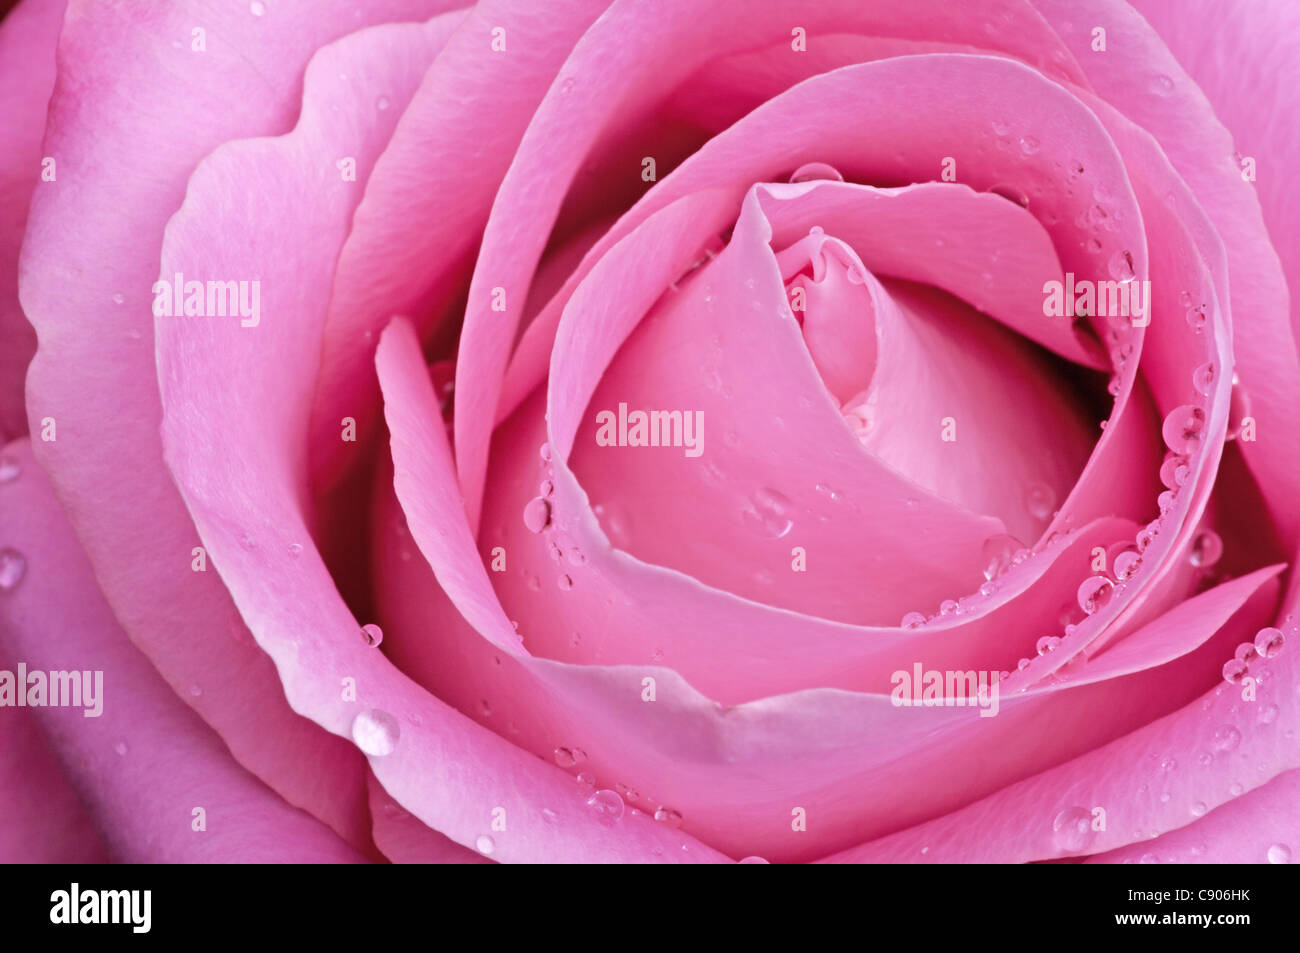 Pink rose with water droplets - Stock Image